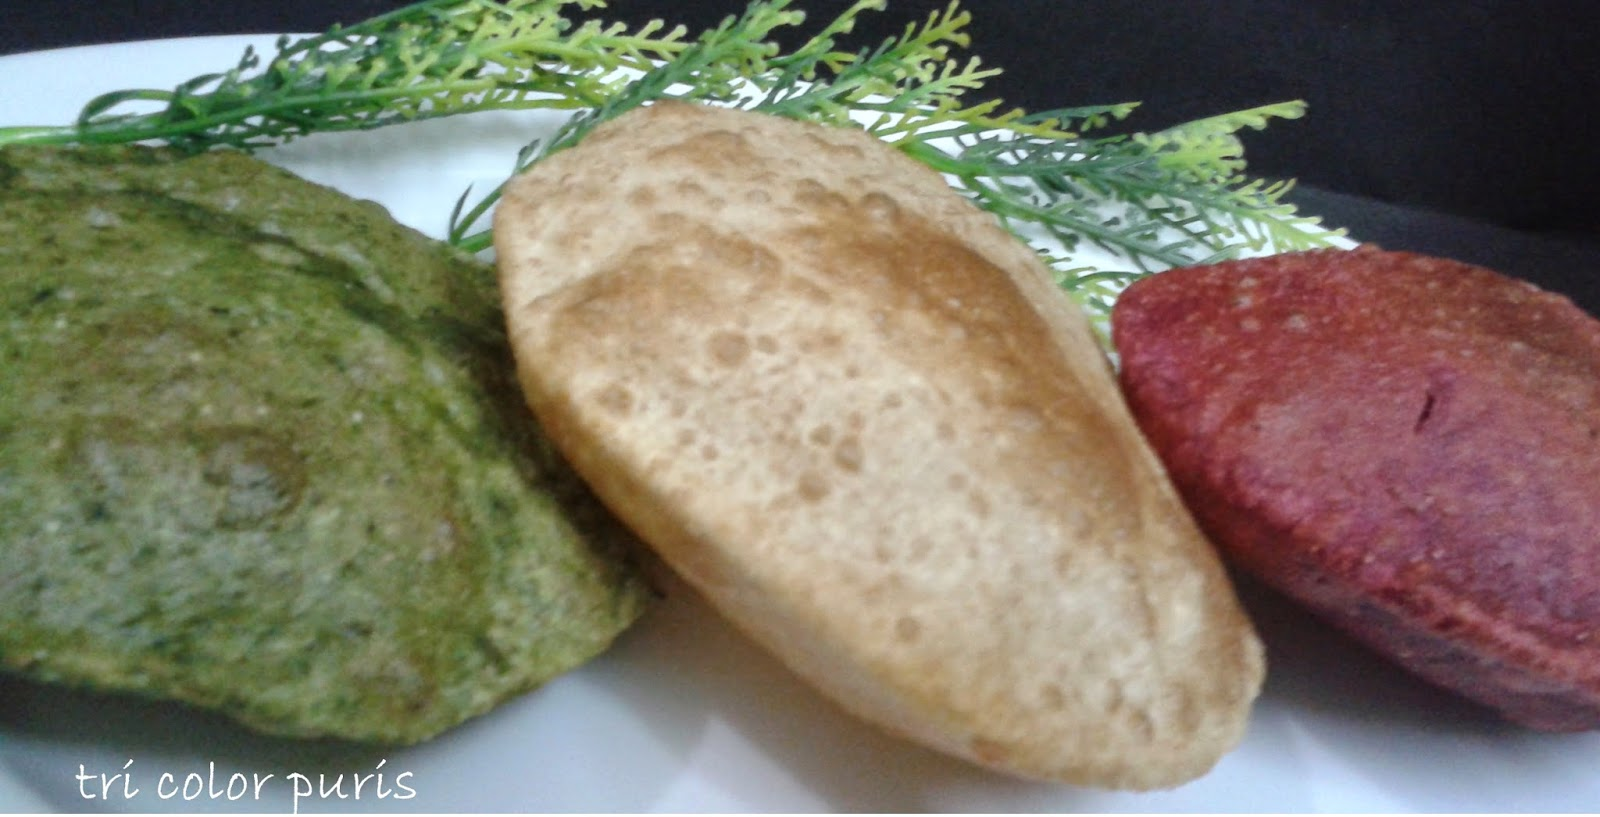 http://www.paakvidhi.com/2015/03/tri-color-puris.html